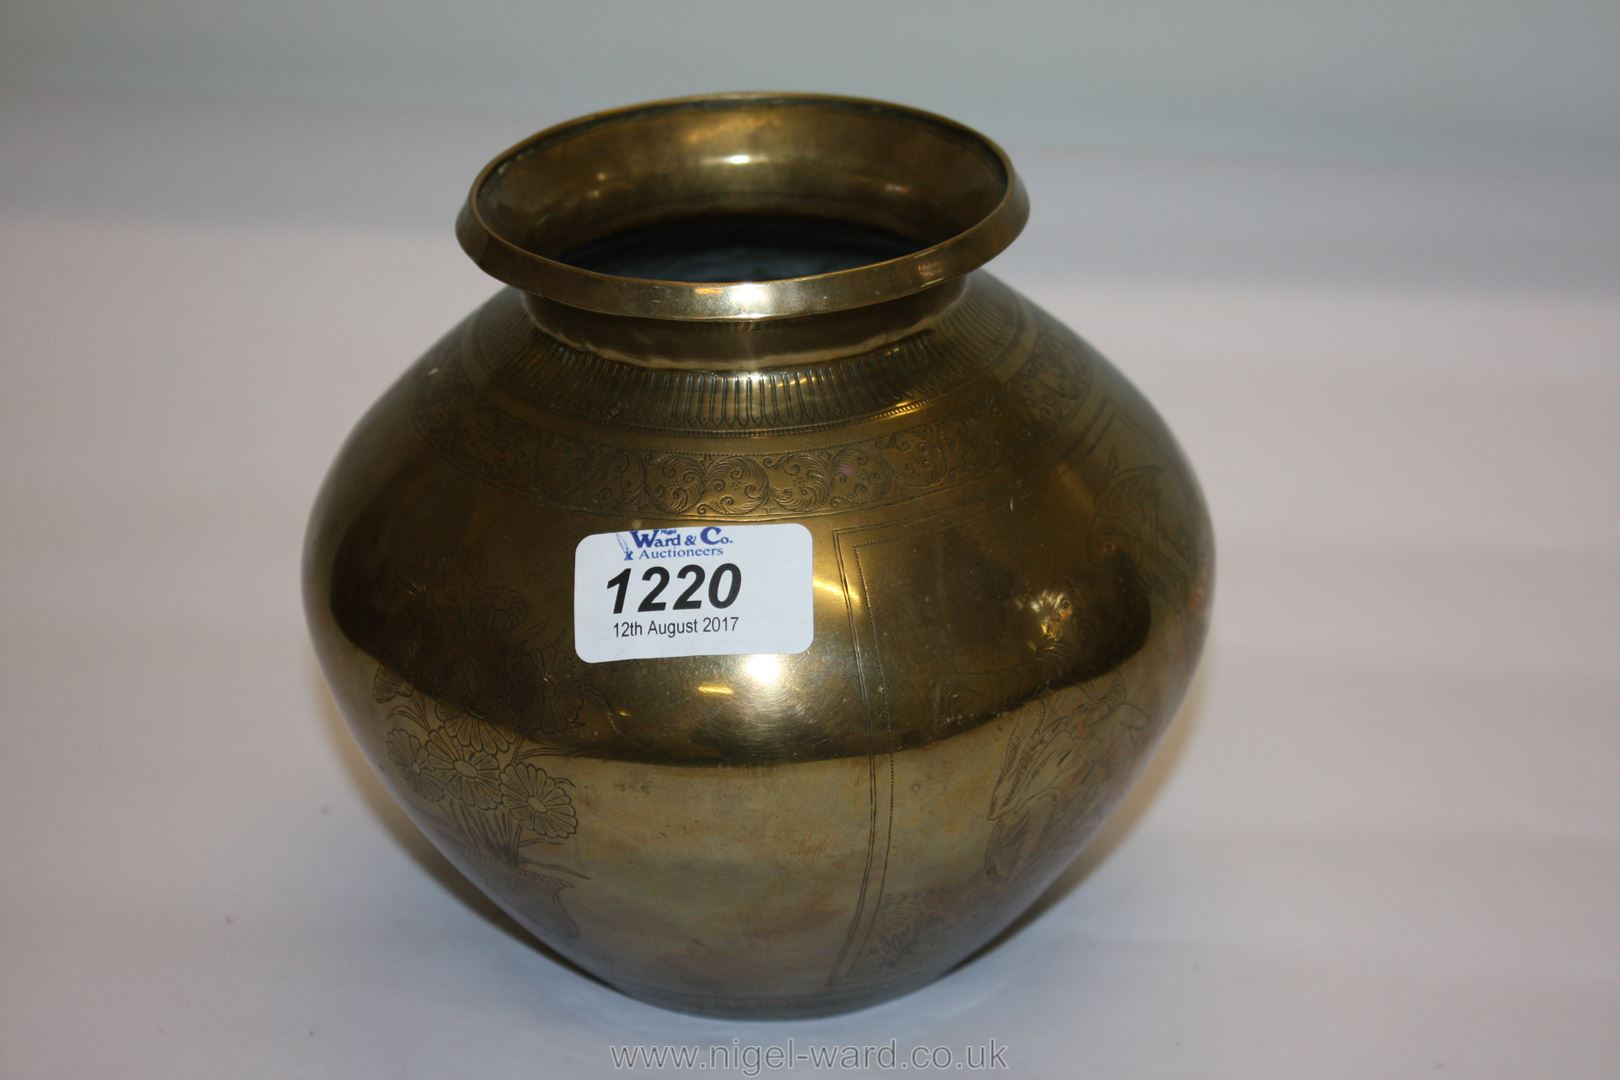 Lot 1220 - A rare and unusual Indian brass lota, 18th century,